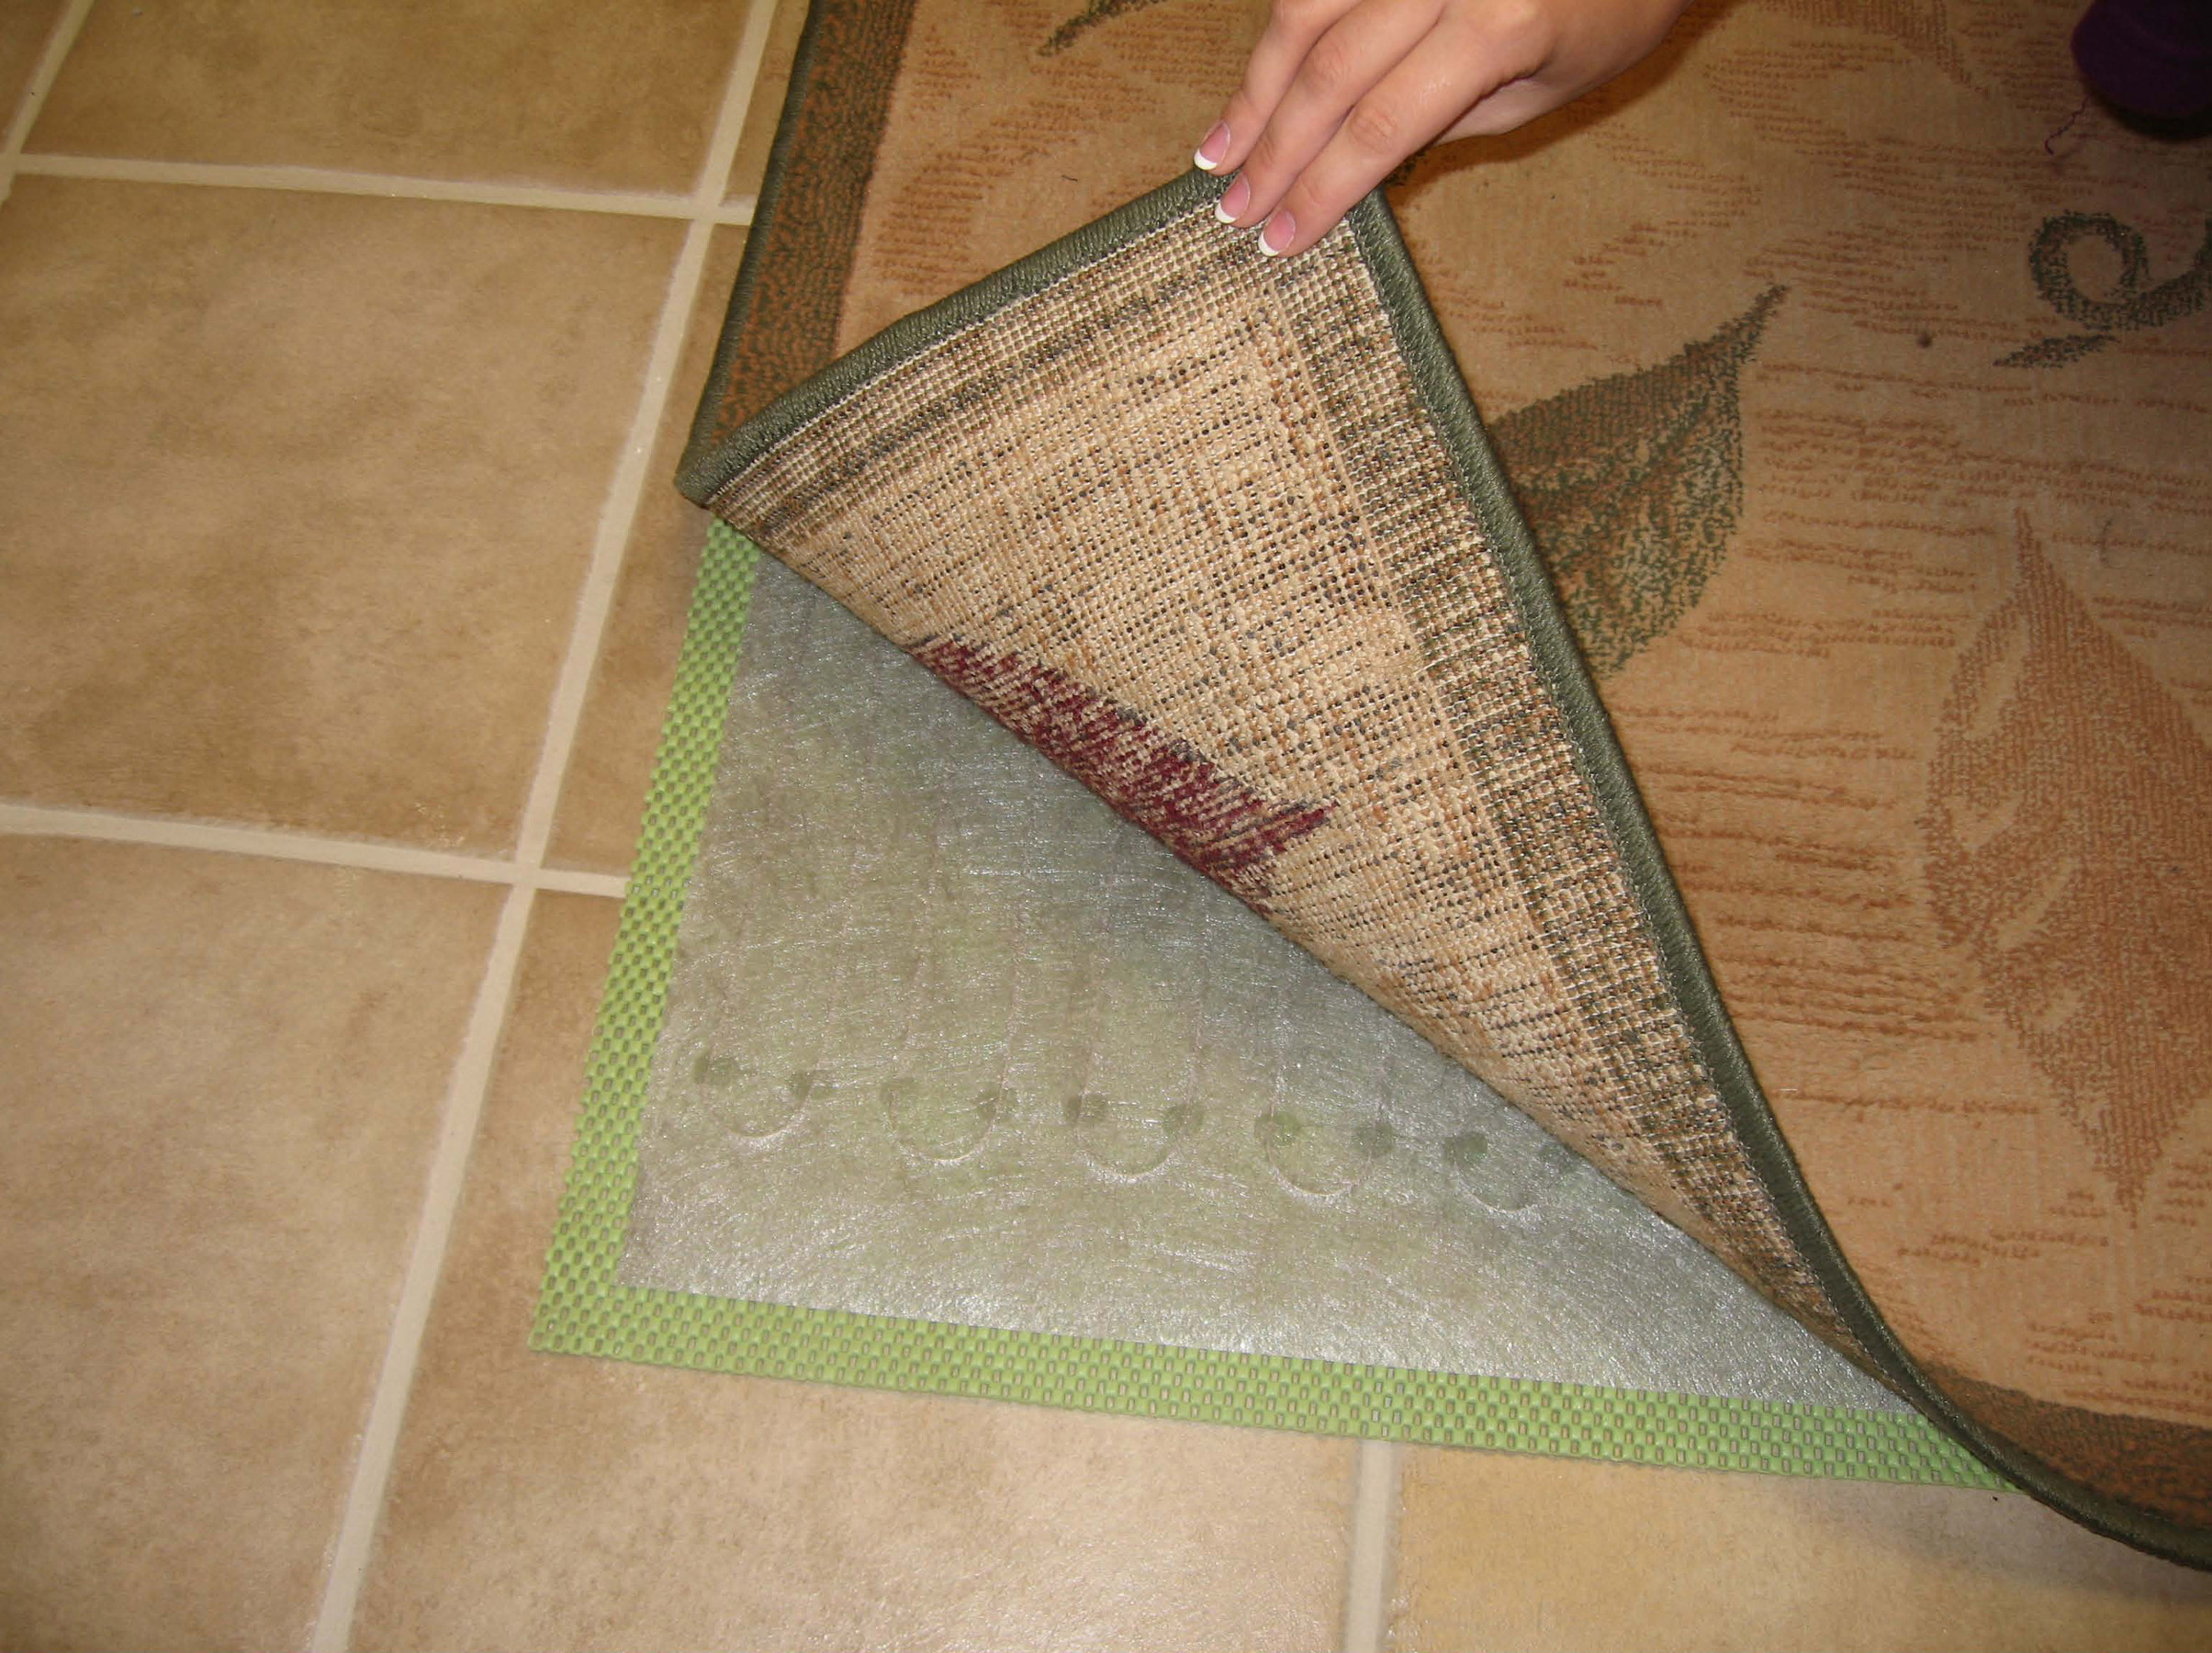 Martinson Nicholls RugBuddy Converts Rugs into Economical Space  HeatersRugBuddy is like an electric blanket for the floor  The heat of  RugBuddy makes the. Newest RugBuddy Heated Mats Turn Your Area Rugs into Safe